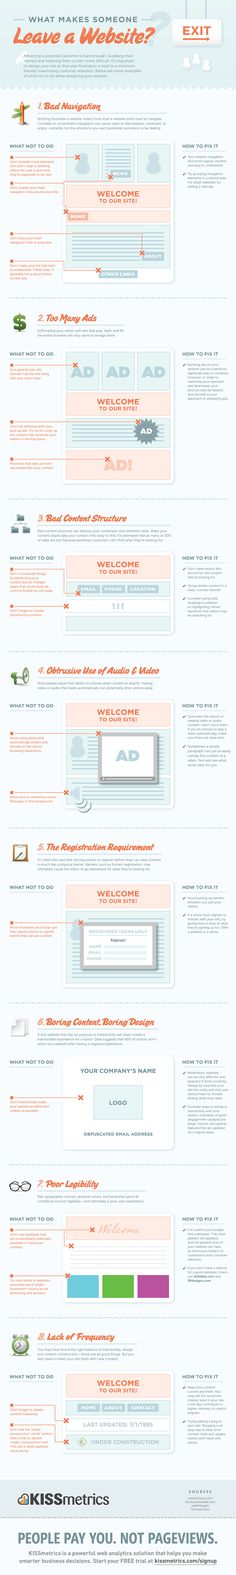 What Makes You Leave A Website? (Infographic)